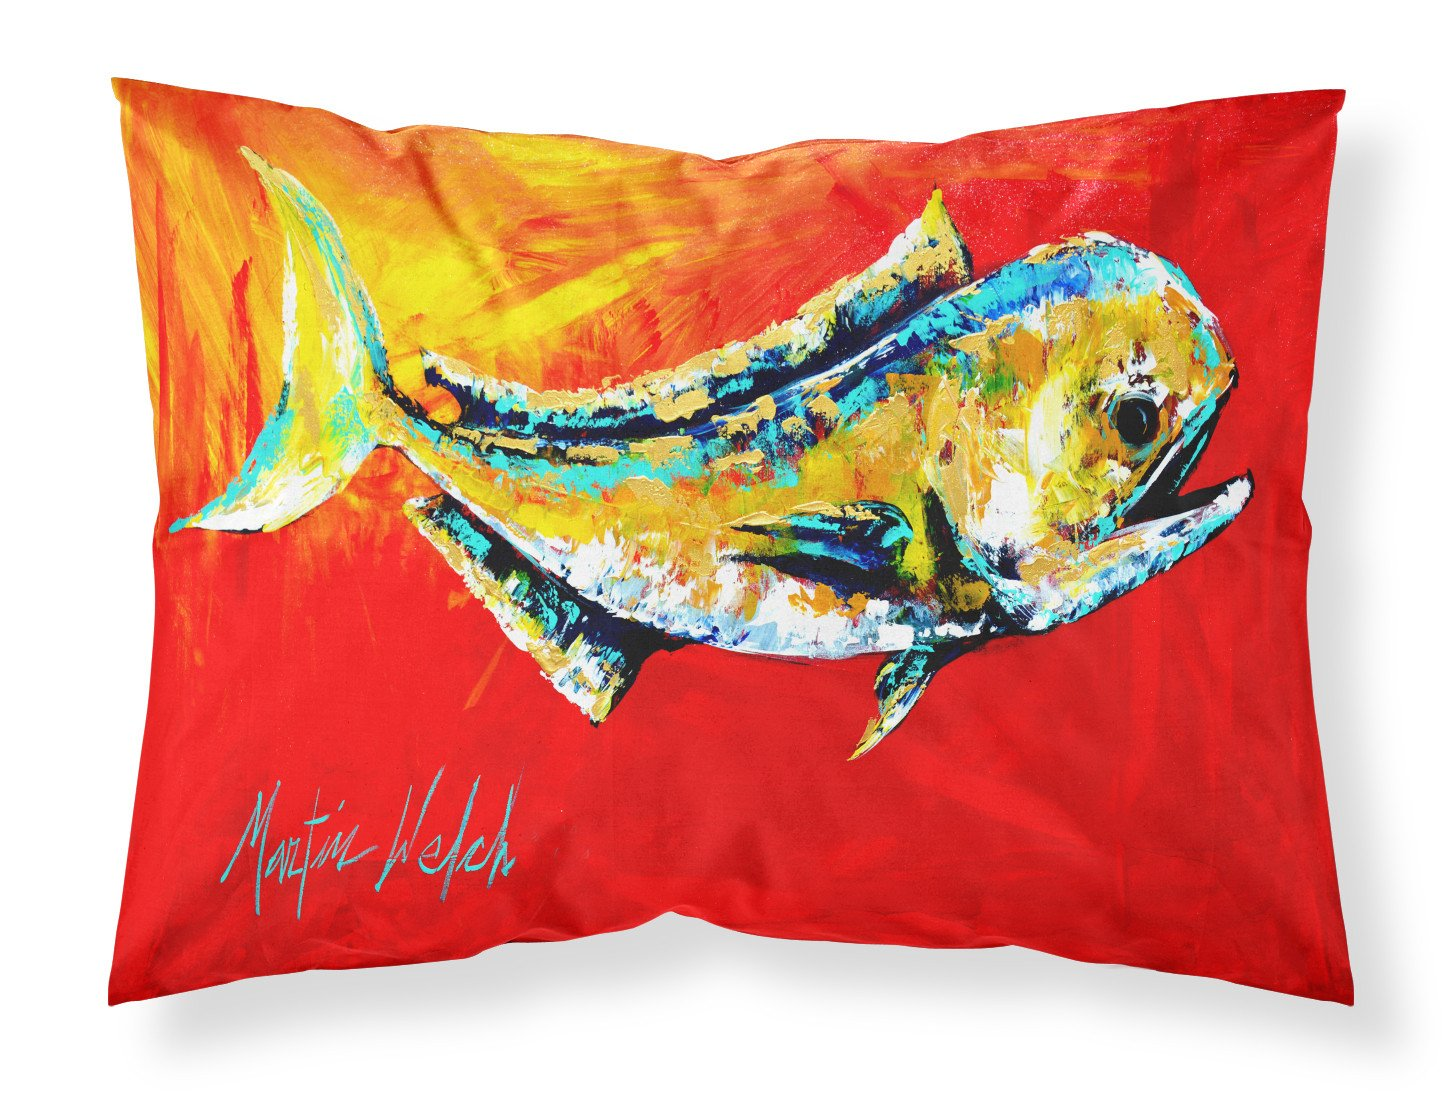 Danny Dolphin Fish Moisture wicking Fabric standard pillowcase by Caroline's Treasures